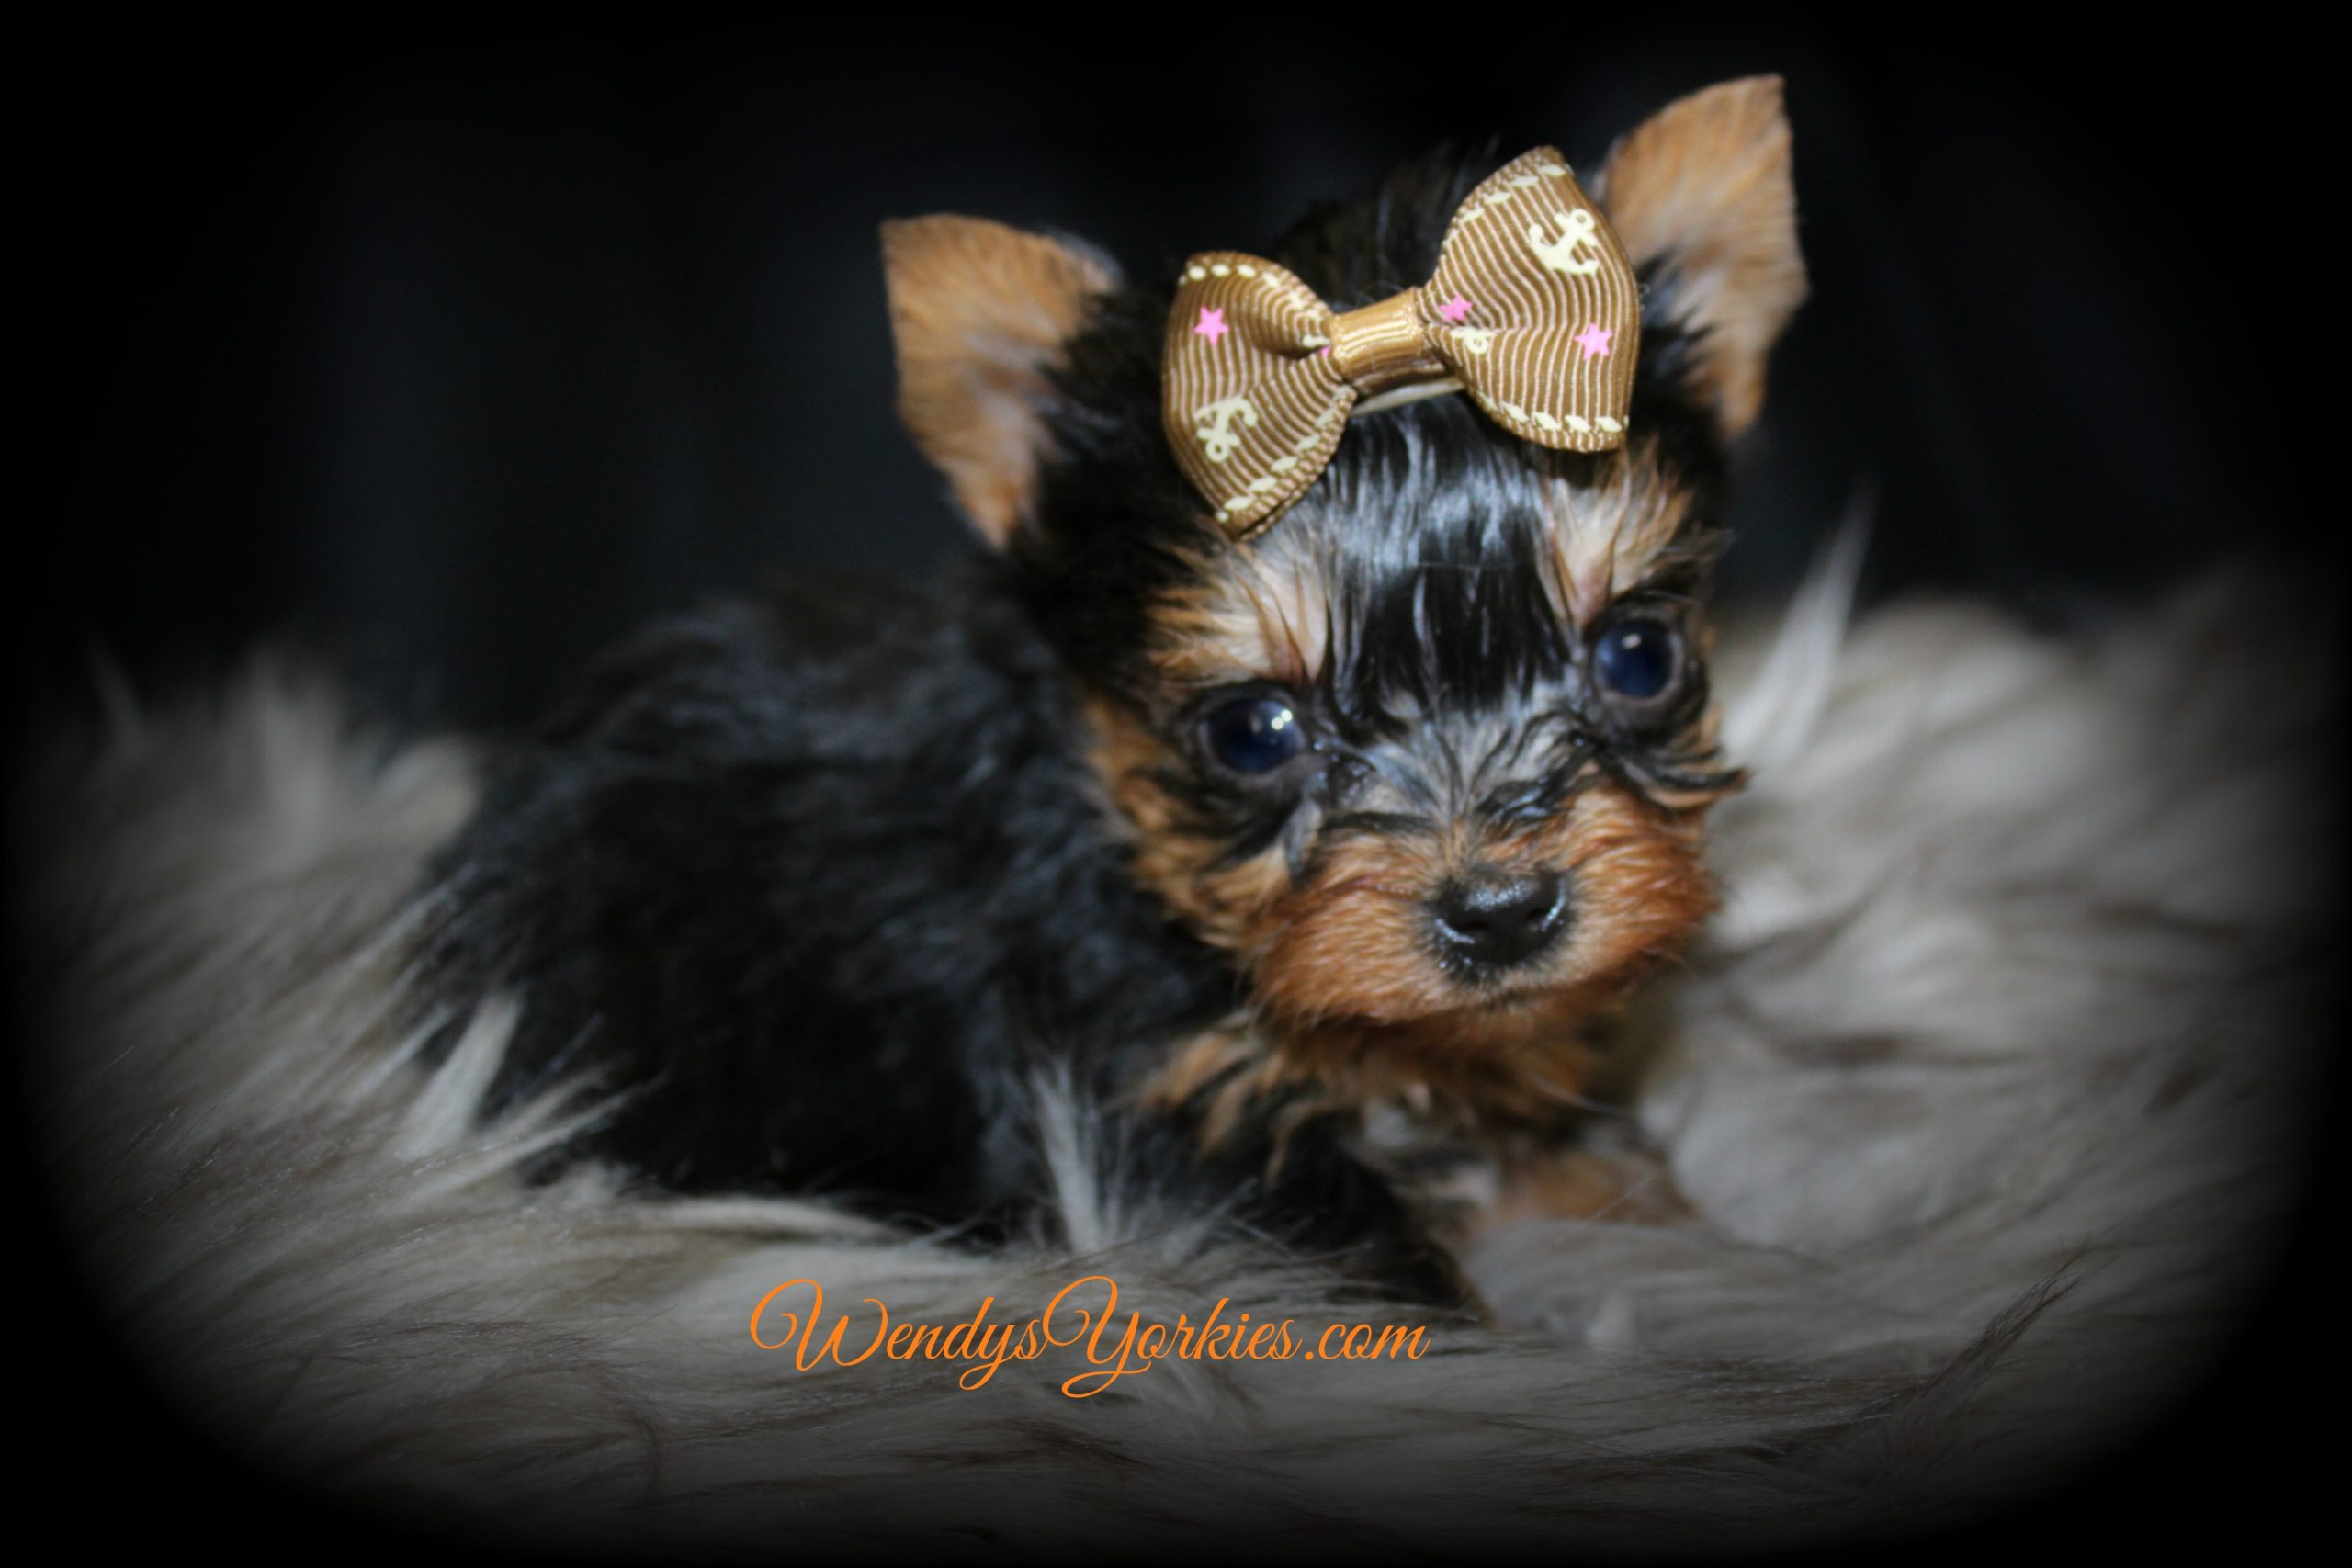 Tiny Male yOrkie puppy, Grace m3, WendysYorkies.com